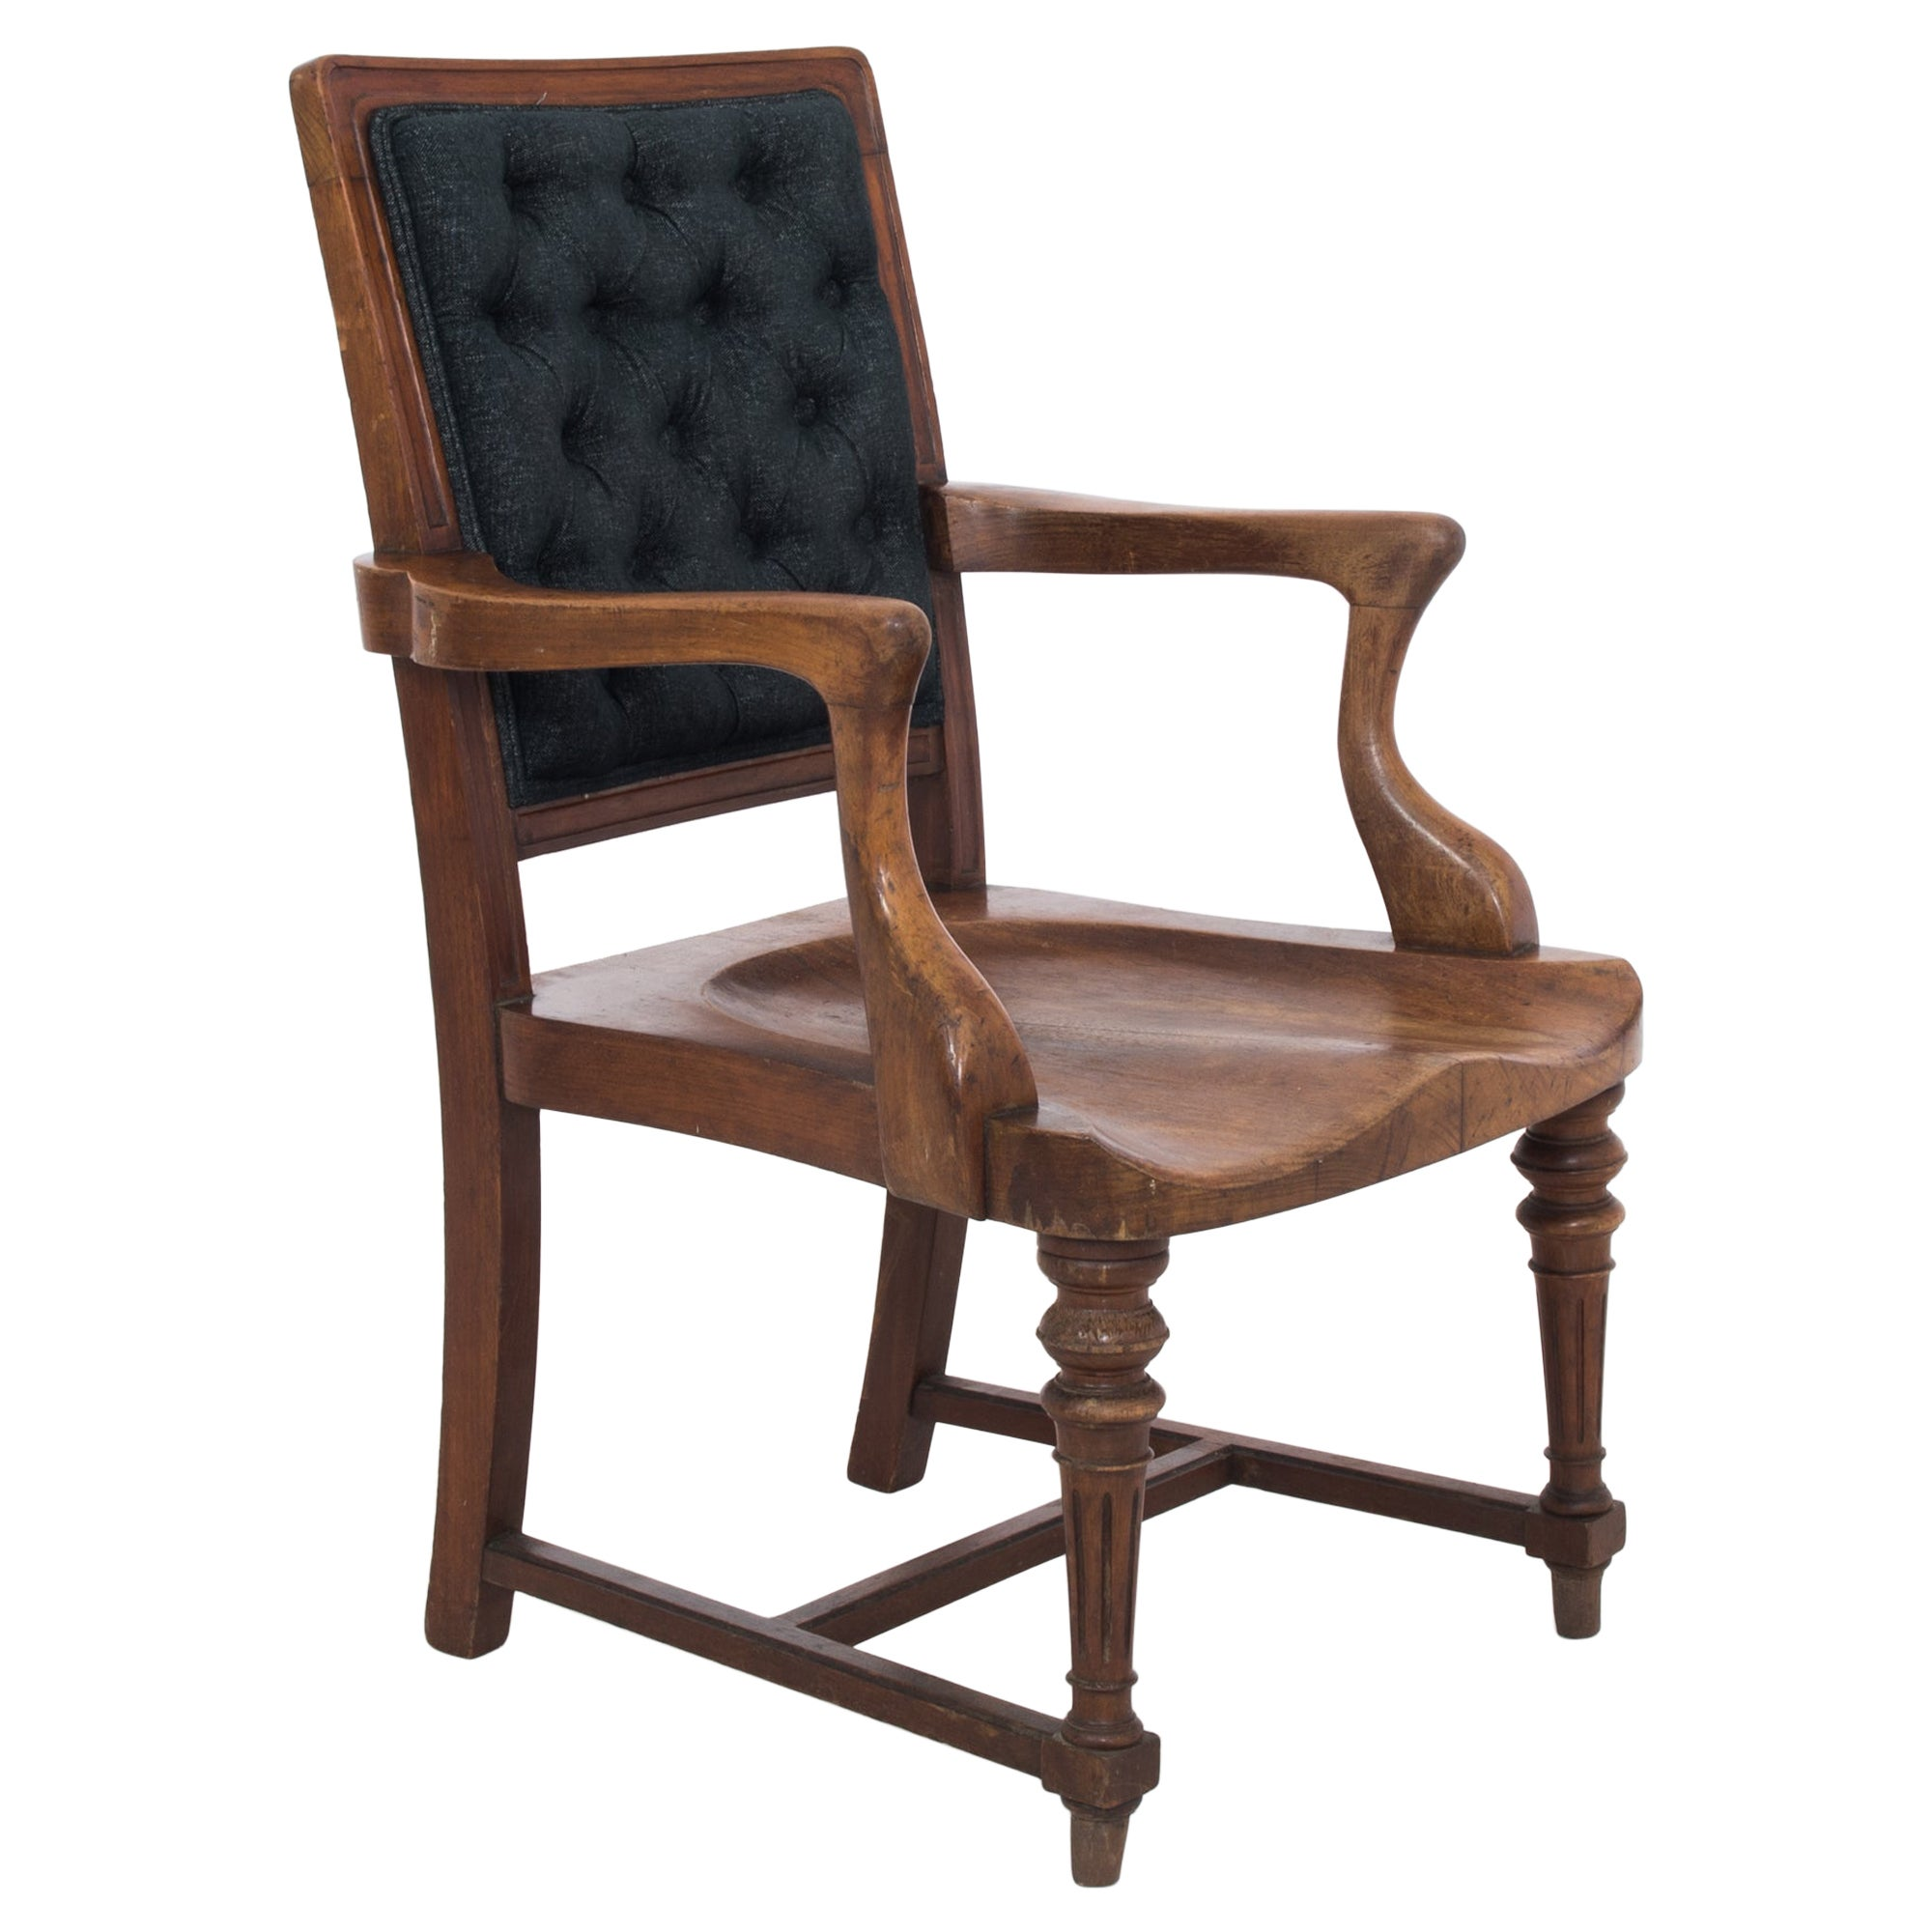 Antique British Wooden Armchair with Upholstered Back